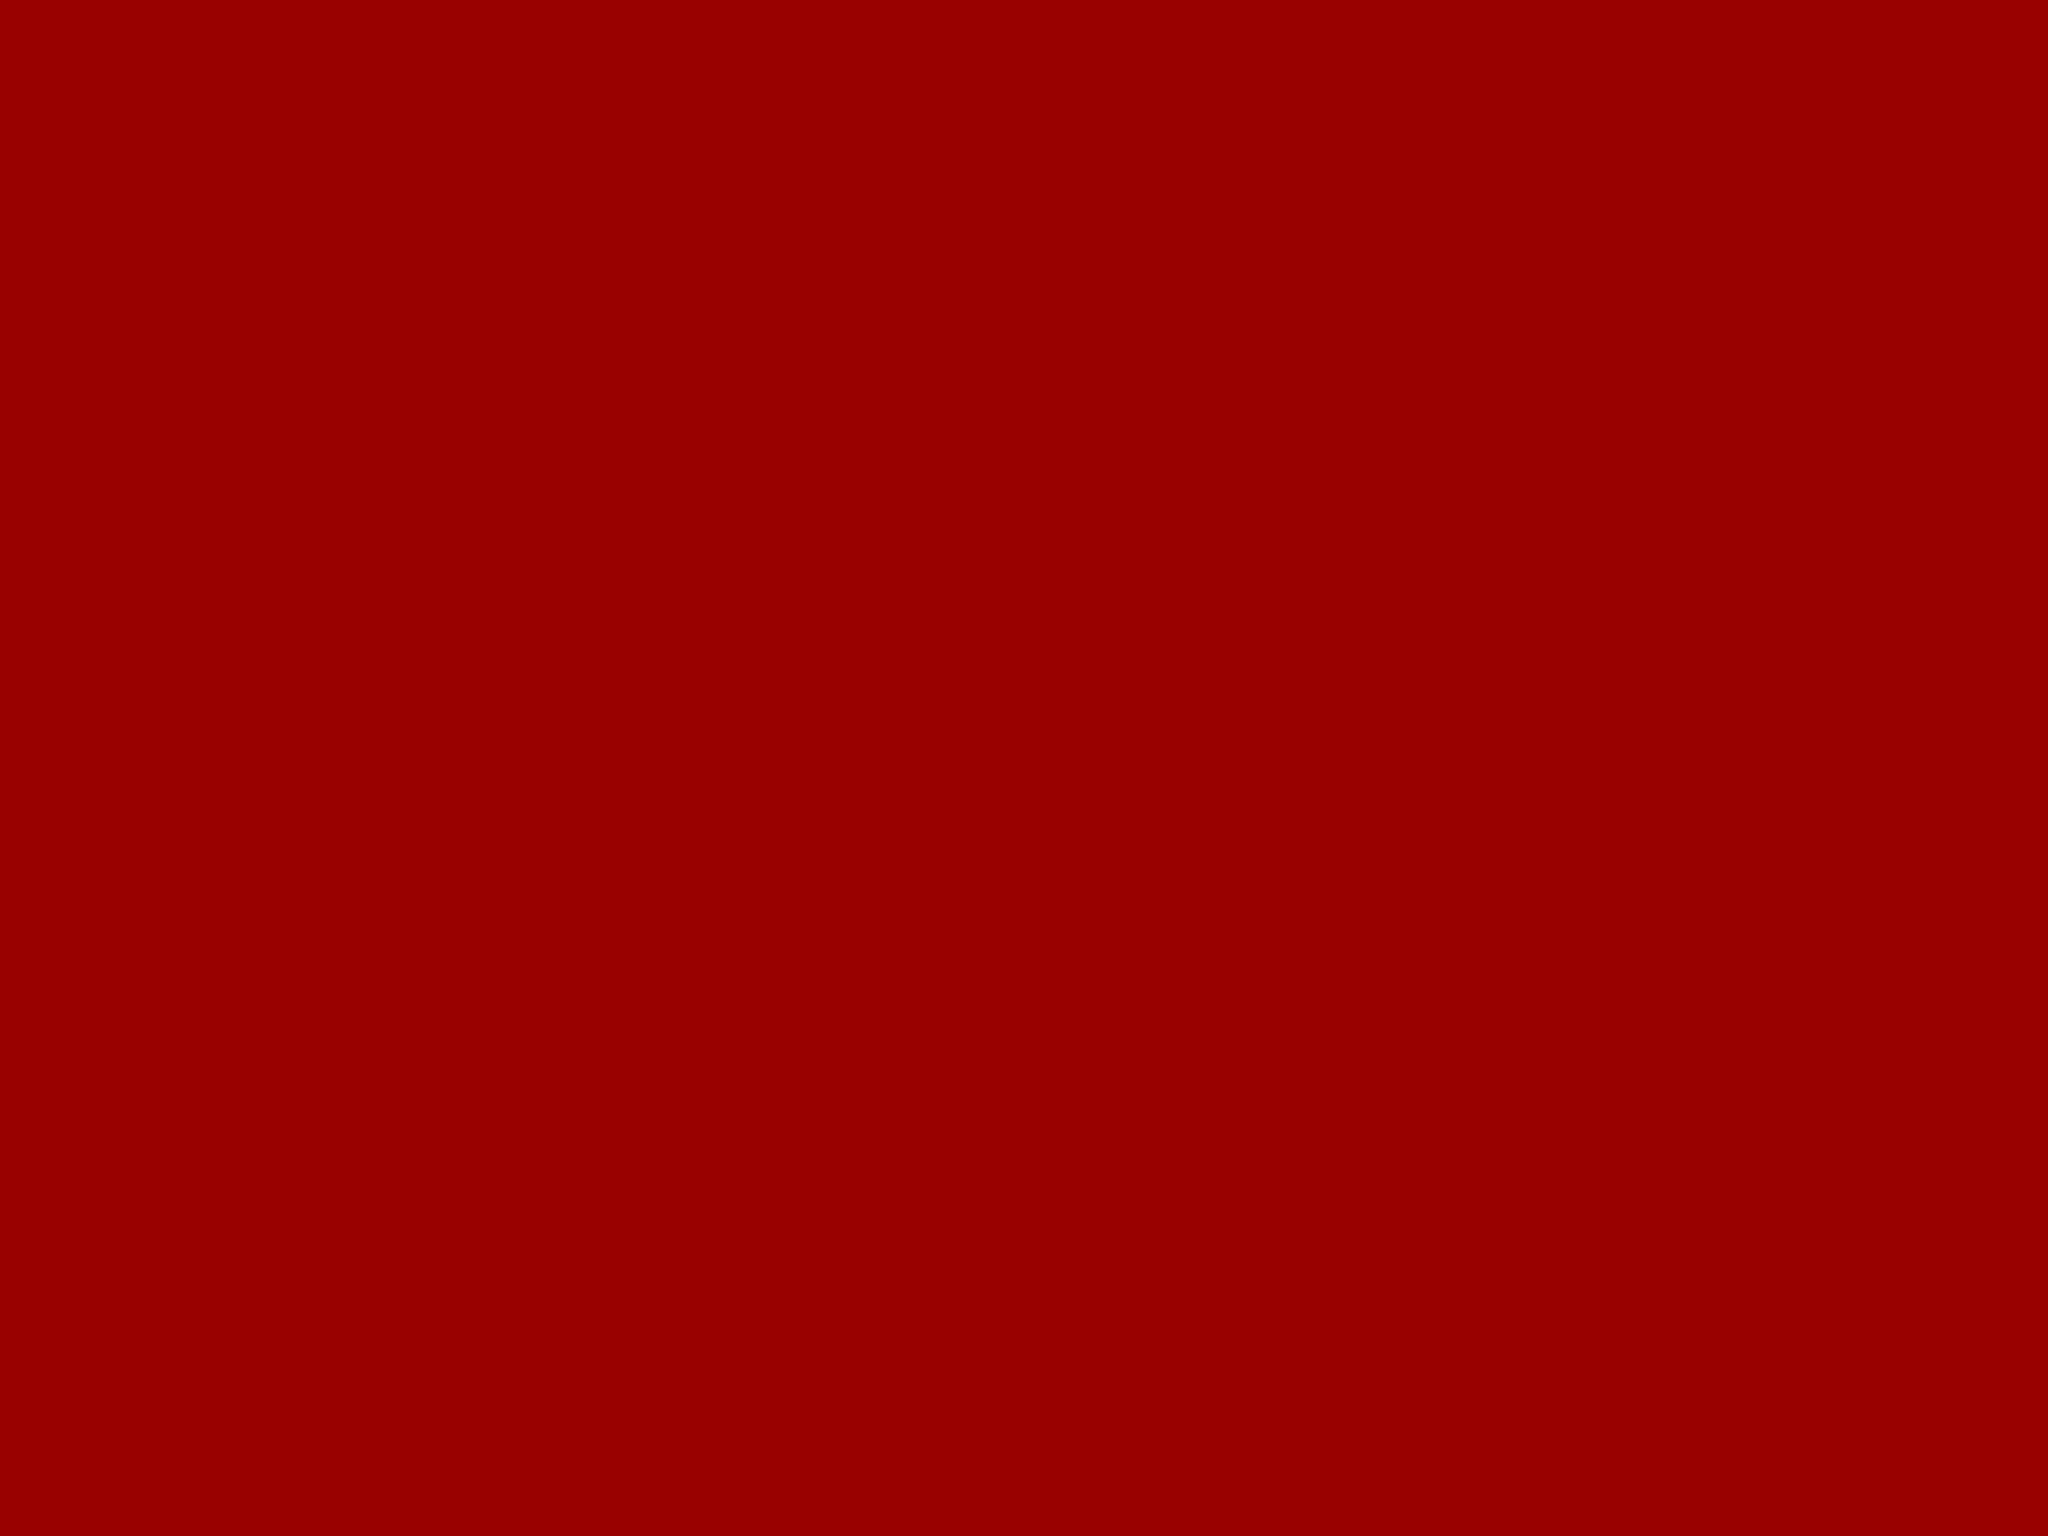 2048x1536 OU Crimson Red Solid Color Background